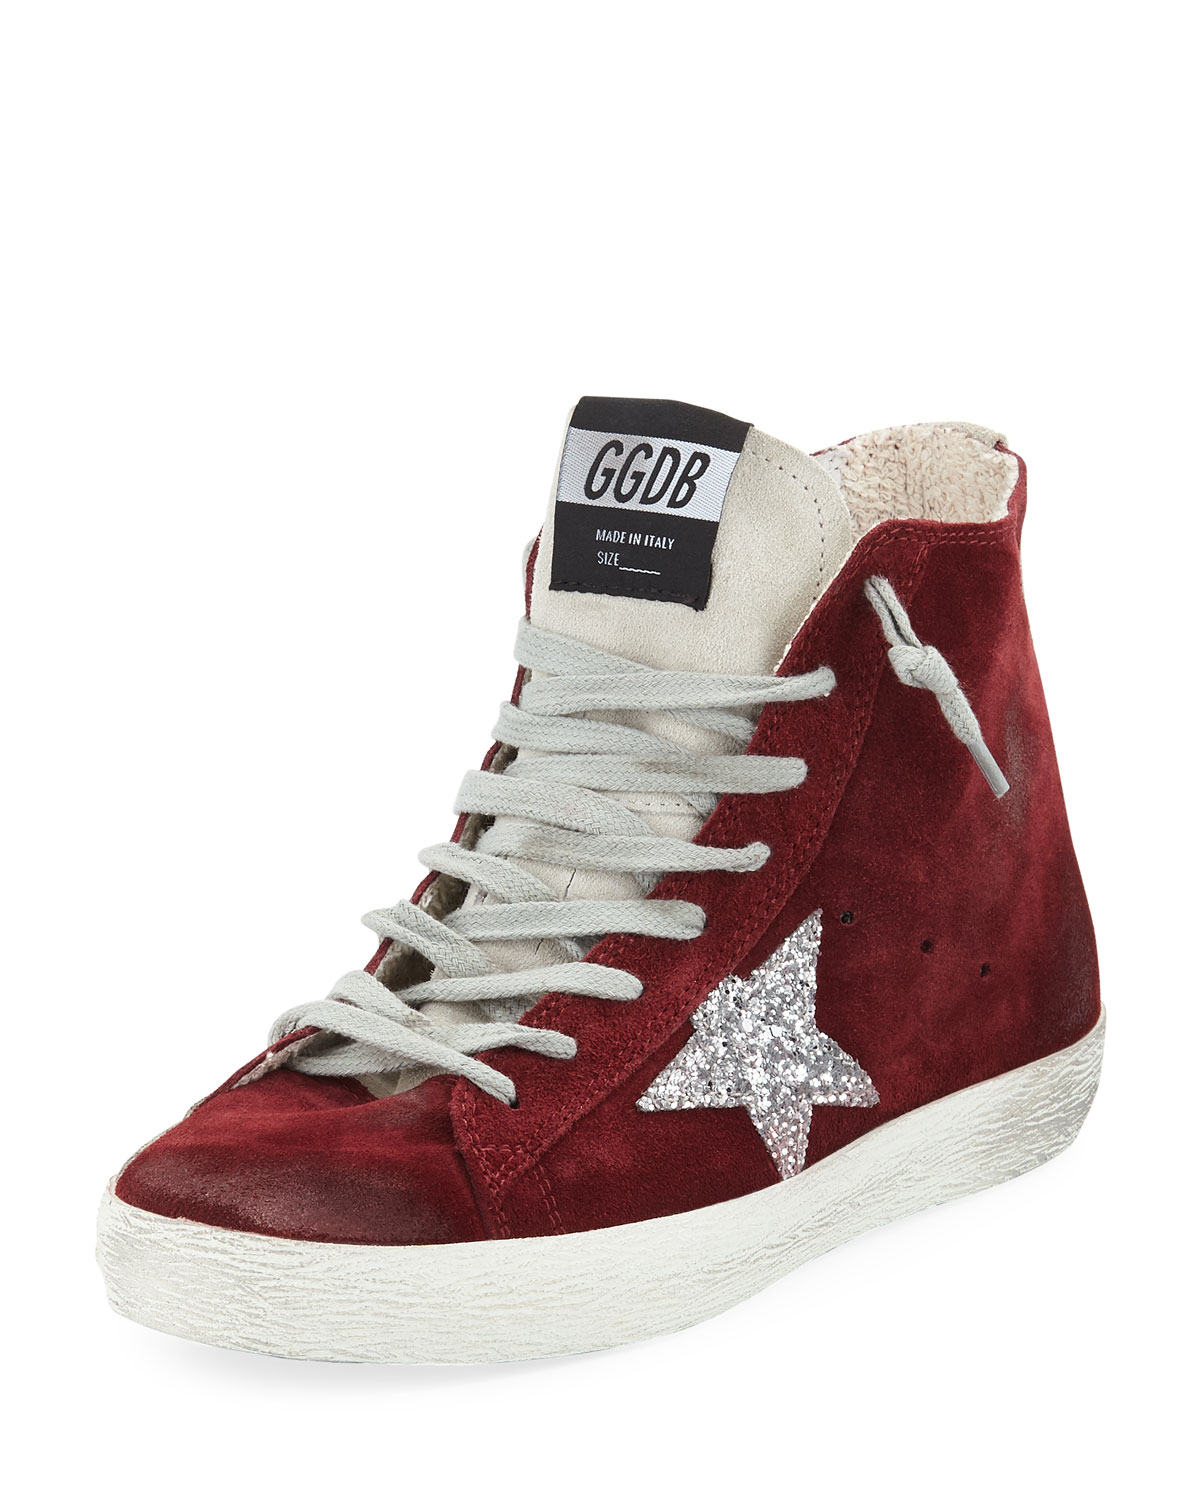 b18f73b87d93 Golden Goose Francy Suede High-Top Sneakers with Glitter Star ...